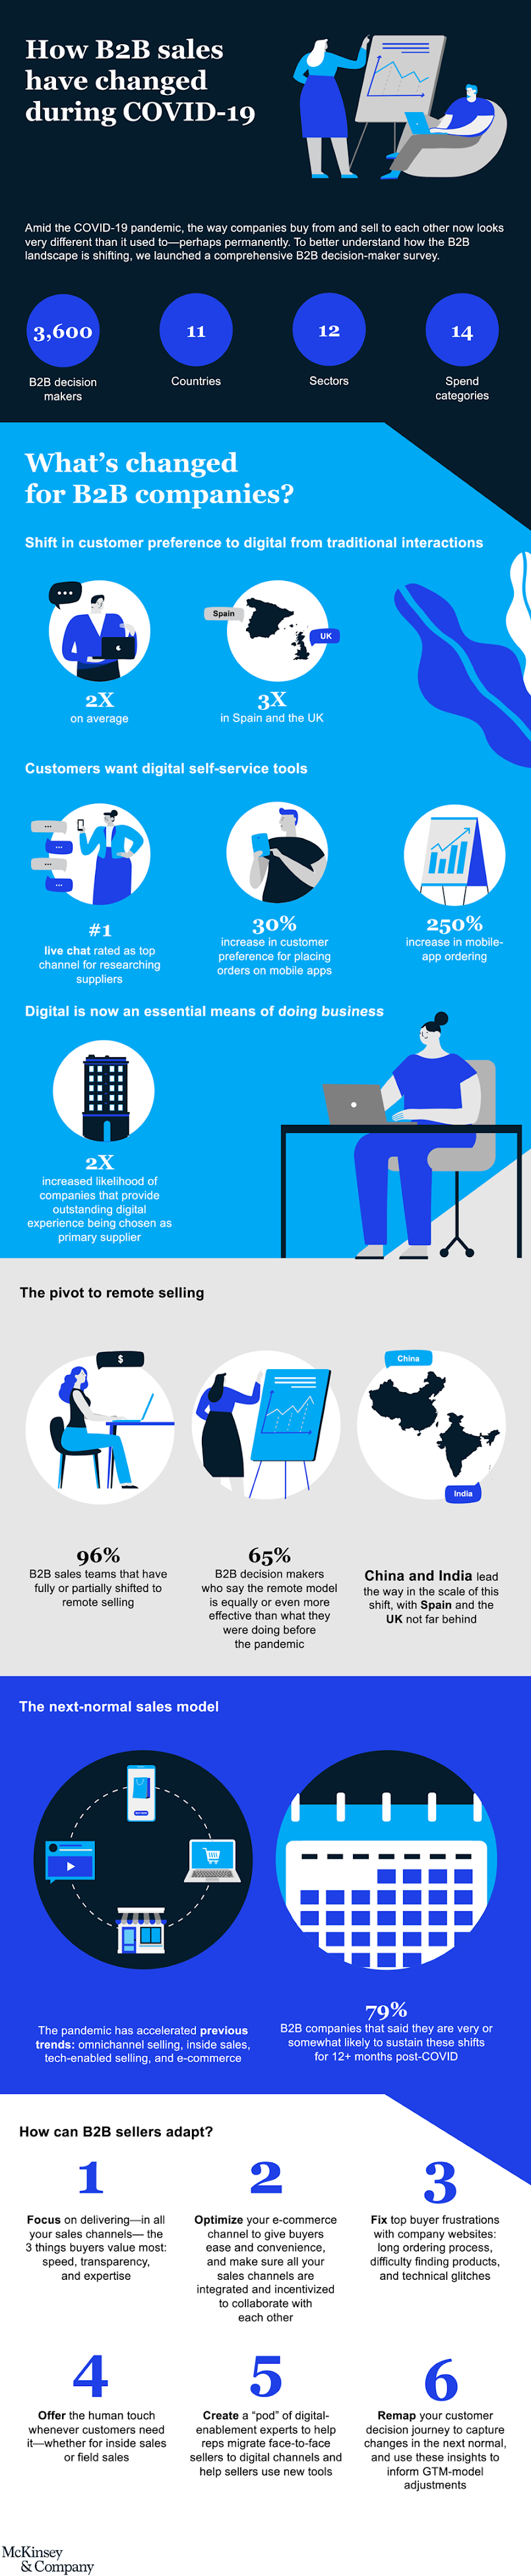 How B2B sales have changed during COVID-19 #infographic #Sales #infographics #B2B #Business #Covid-19 #Pandemic #B2B companies